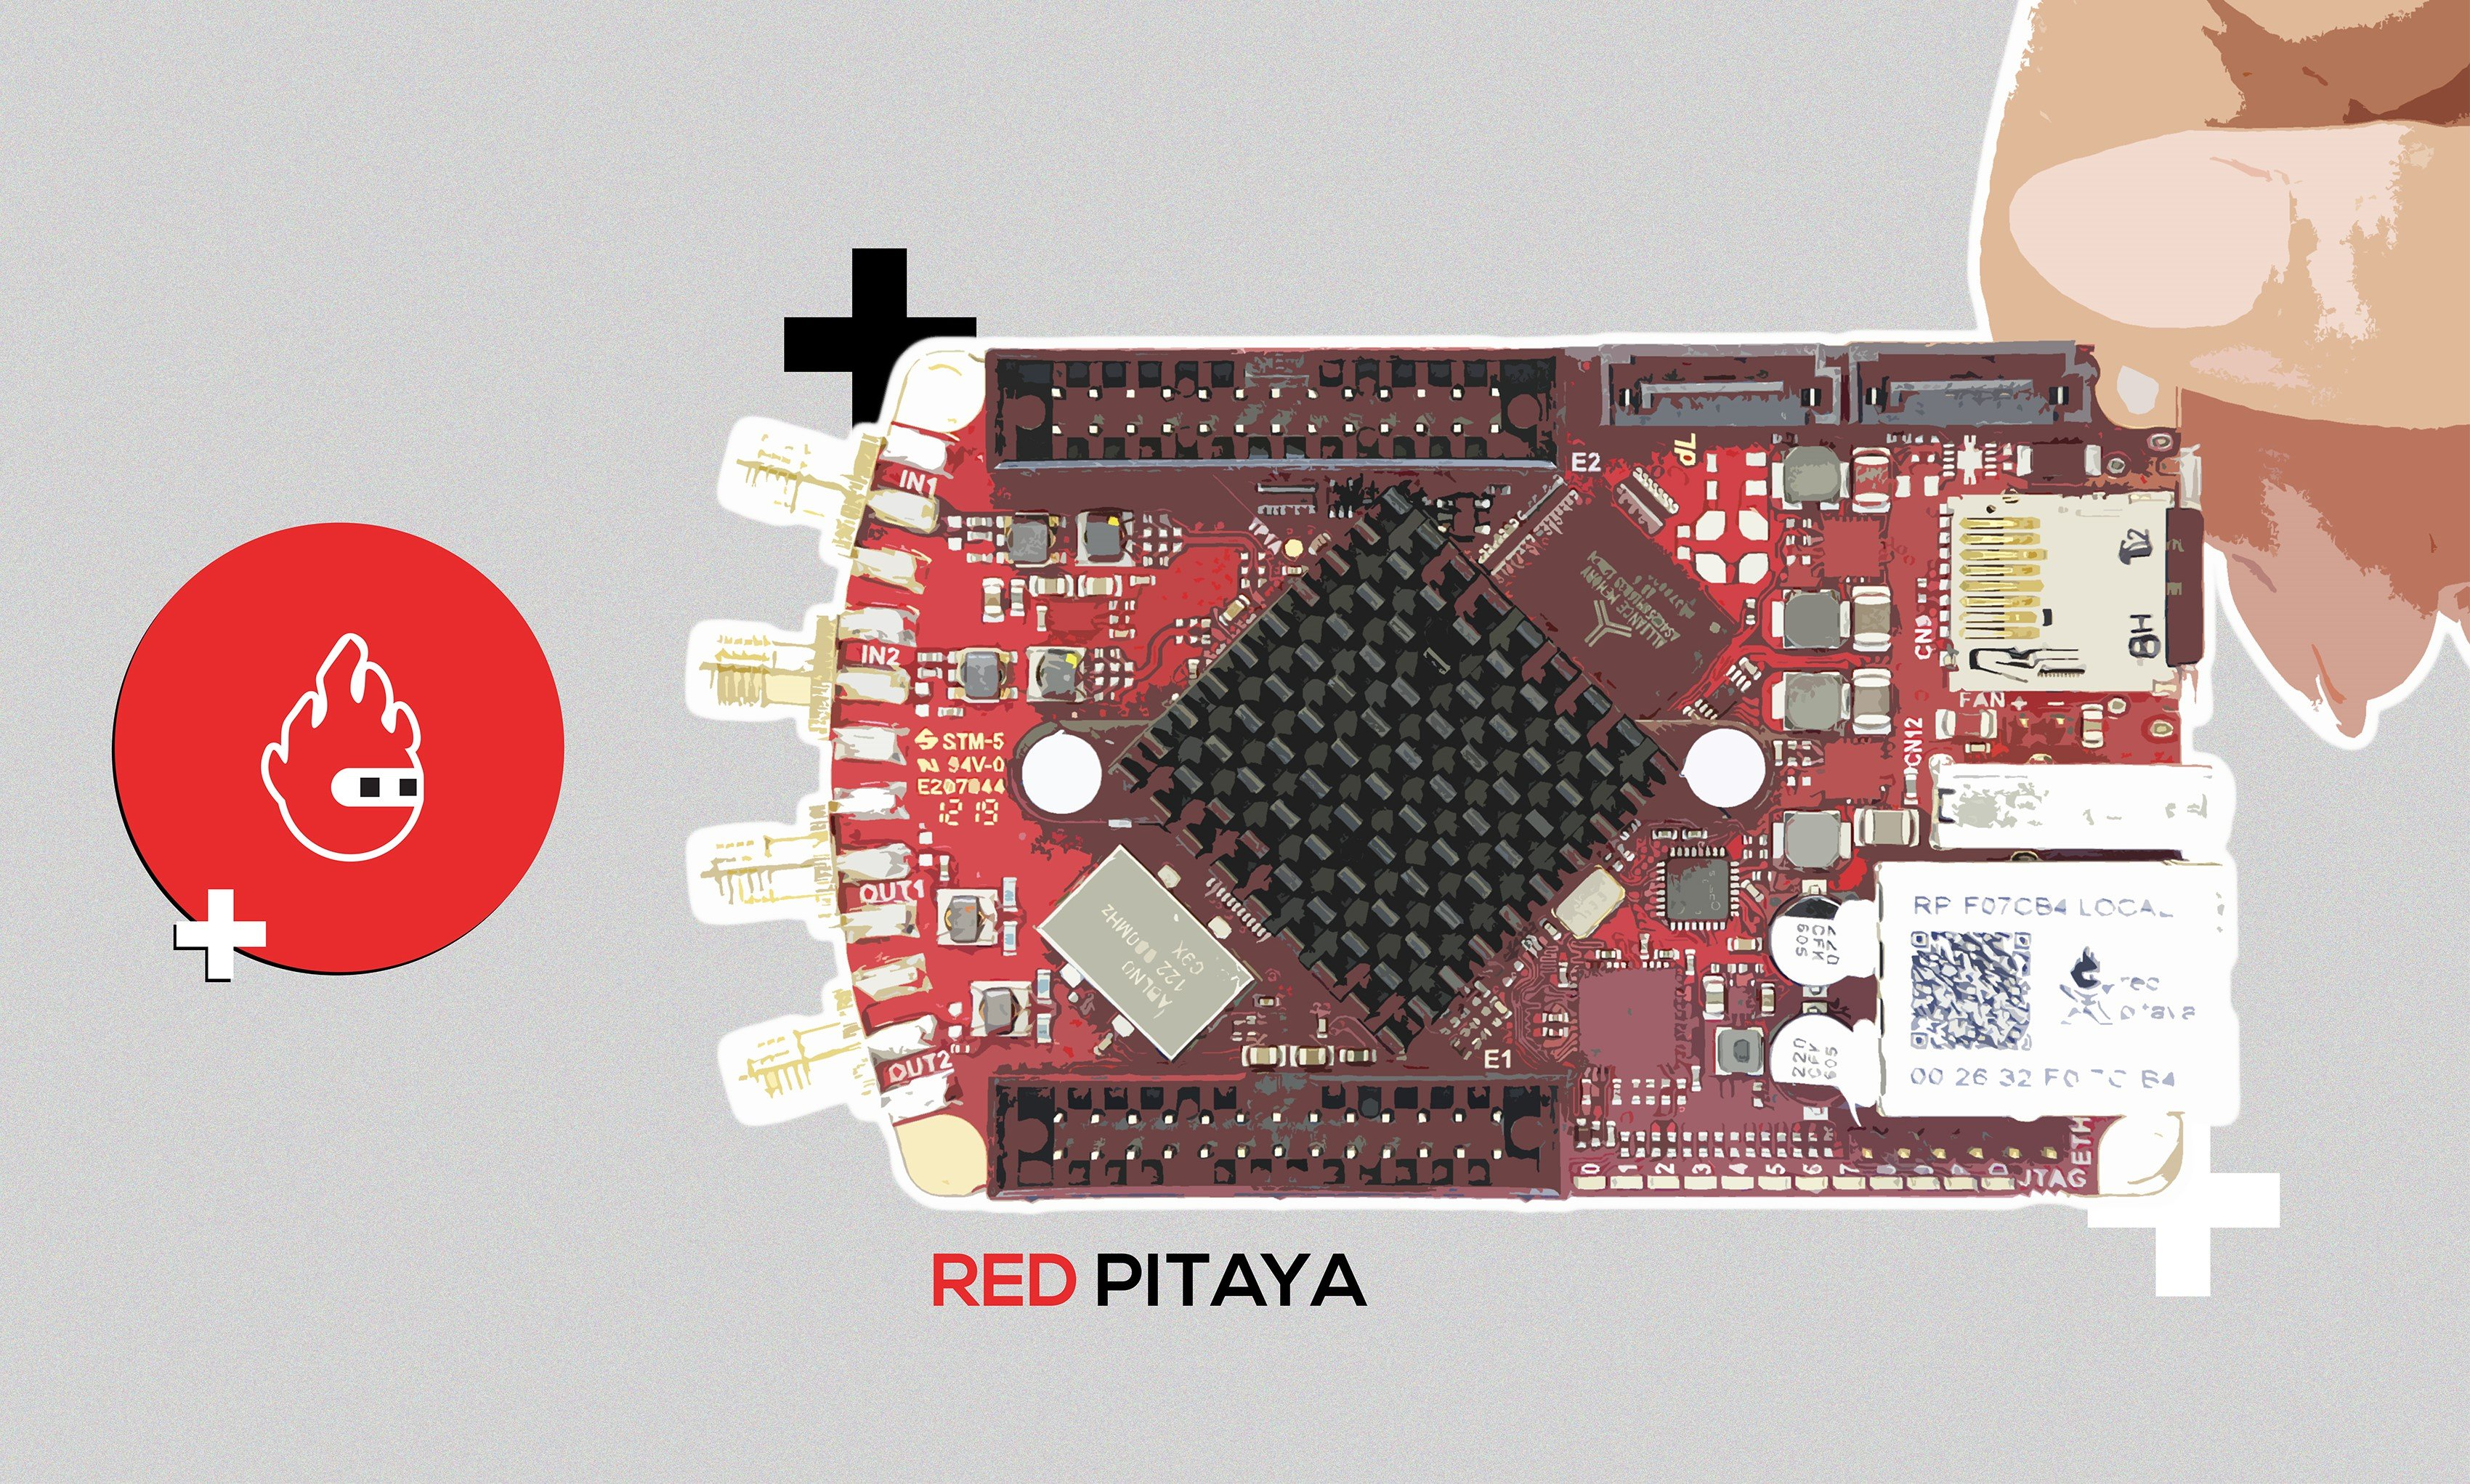 What makes the Red Pitaya SDRlab perfect tool for SDR?